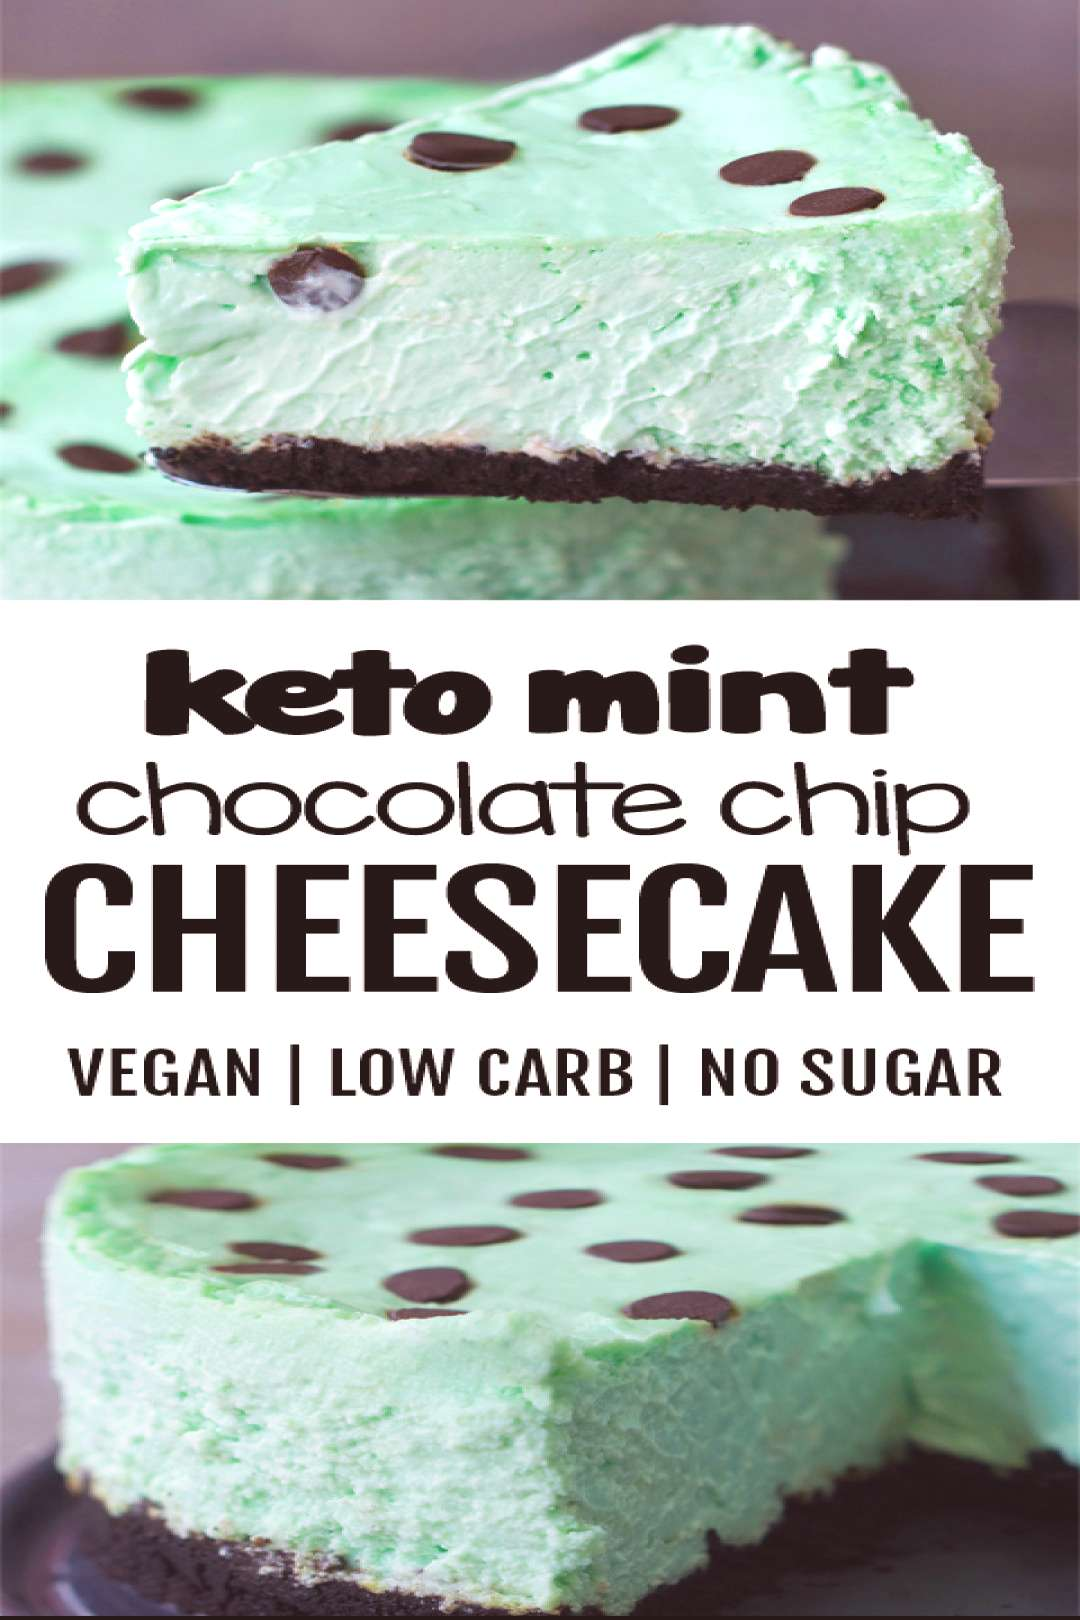 KETO Low Carb Creamy Mint Chocolate Chip Cheesecake Recipe#carb